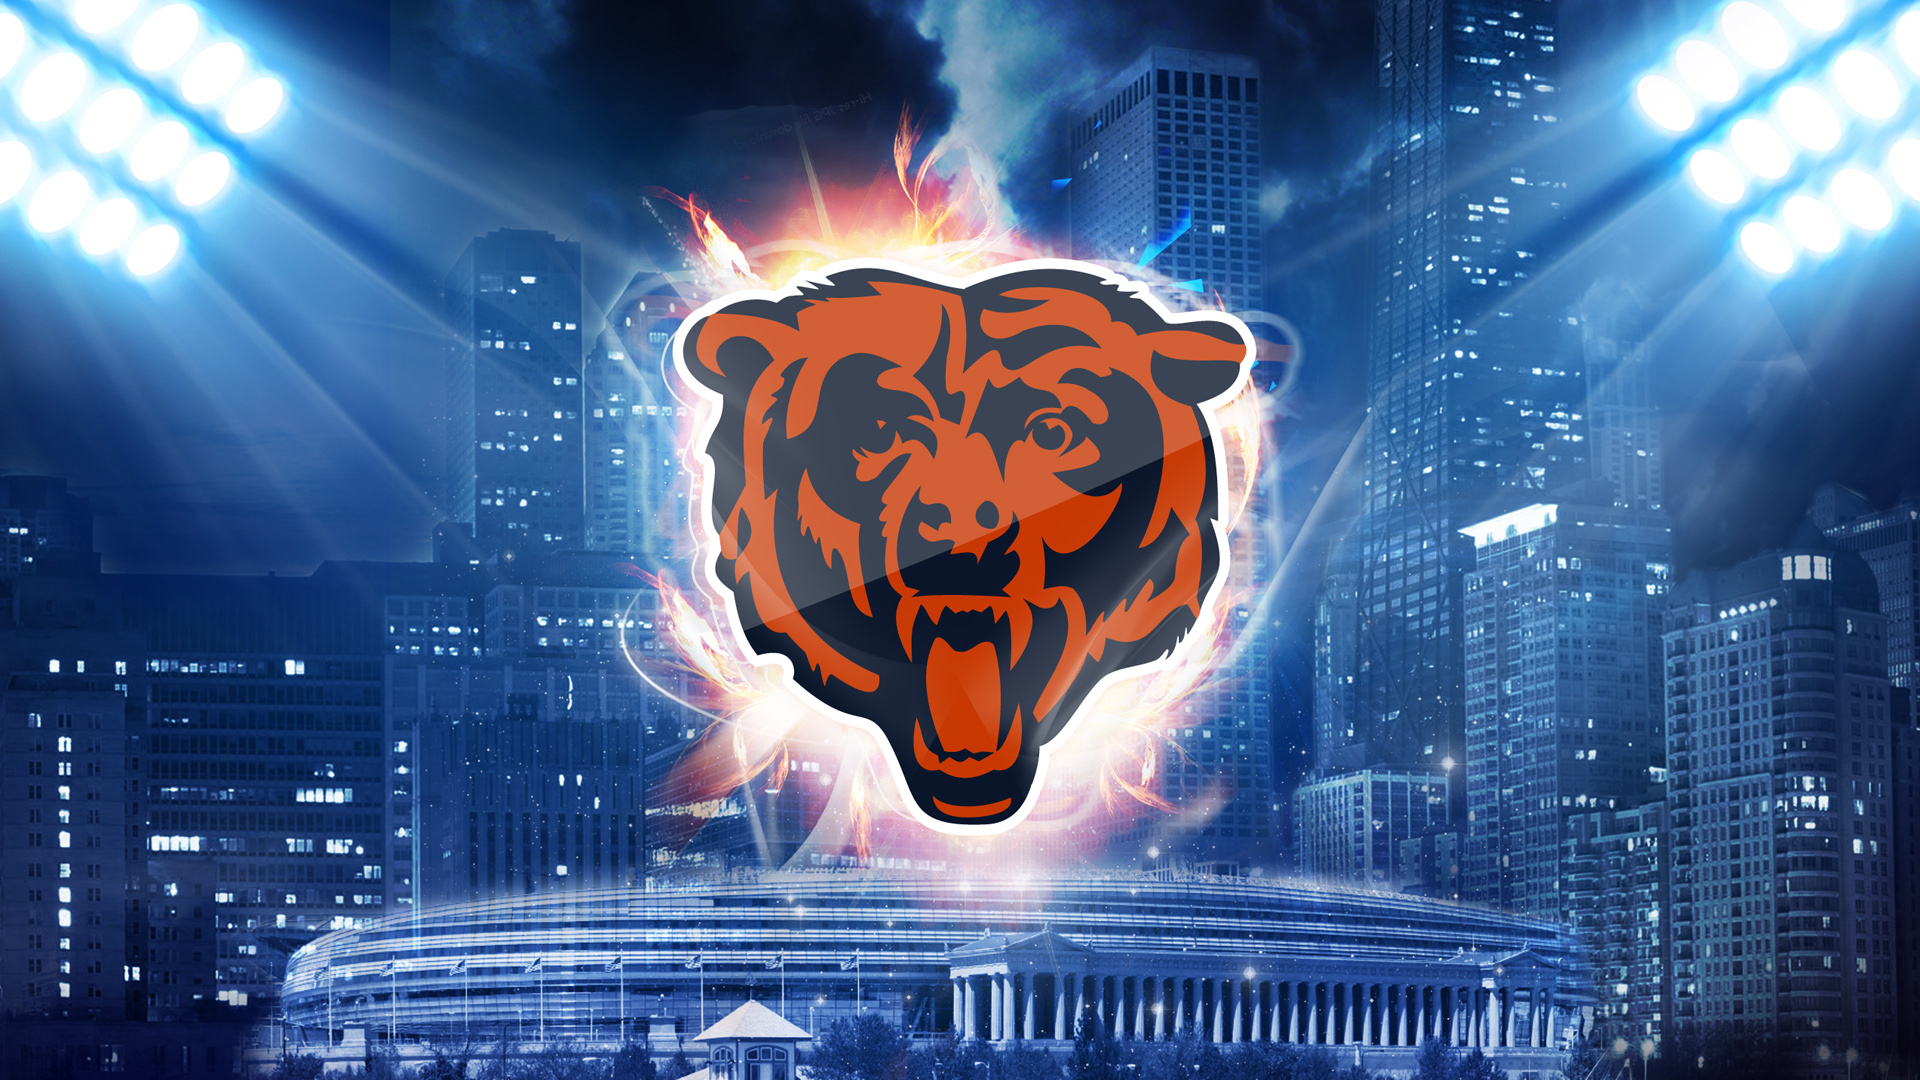 Gallery For gt Chicago Bears Wallpaper 2013 1920x1080